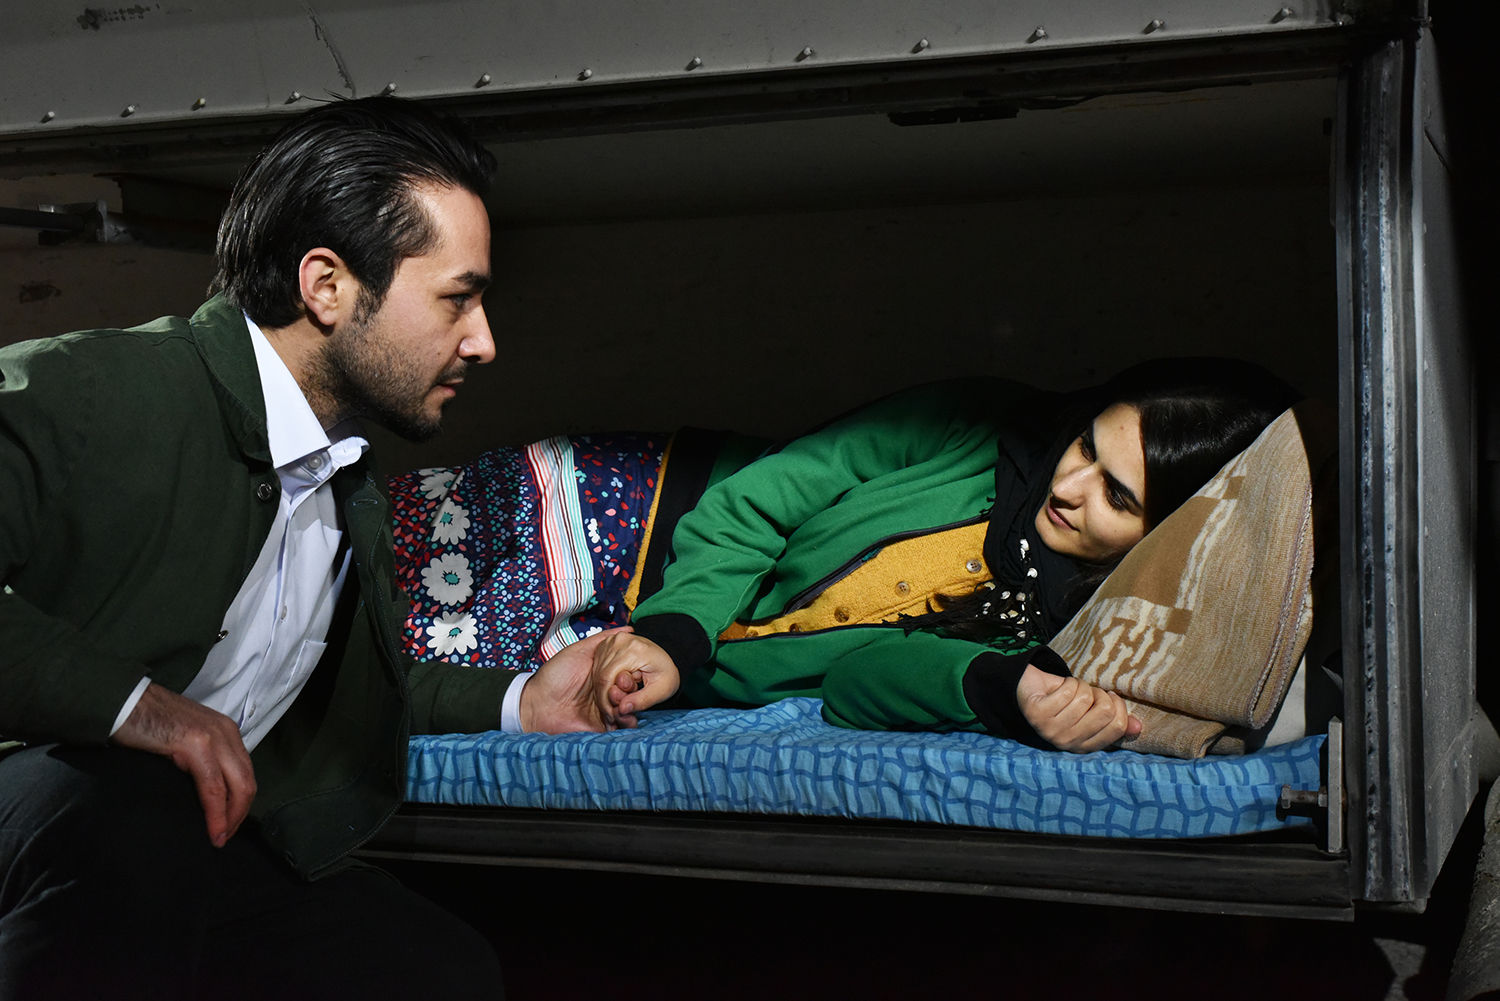 man talking to a woman lying on train bed, The Other Side of Hope